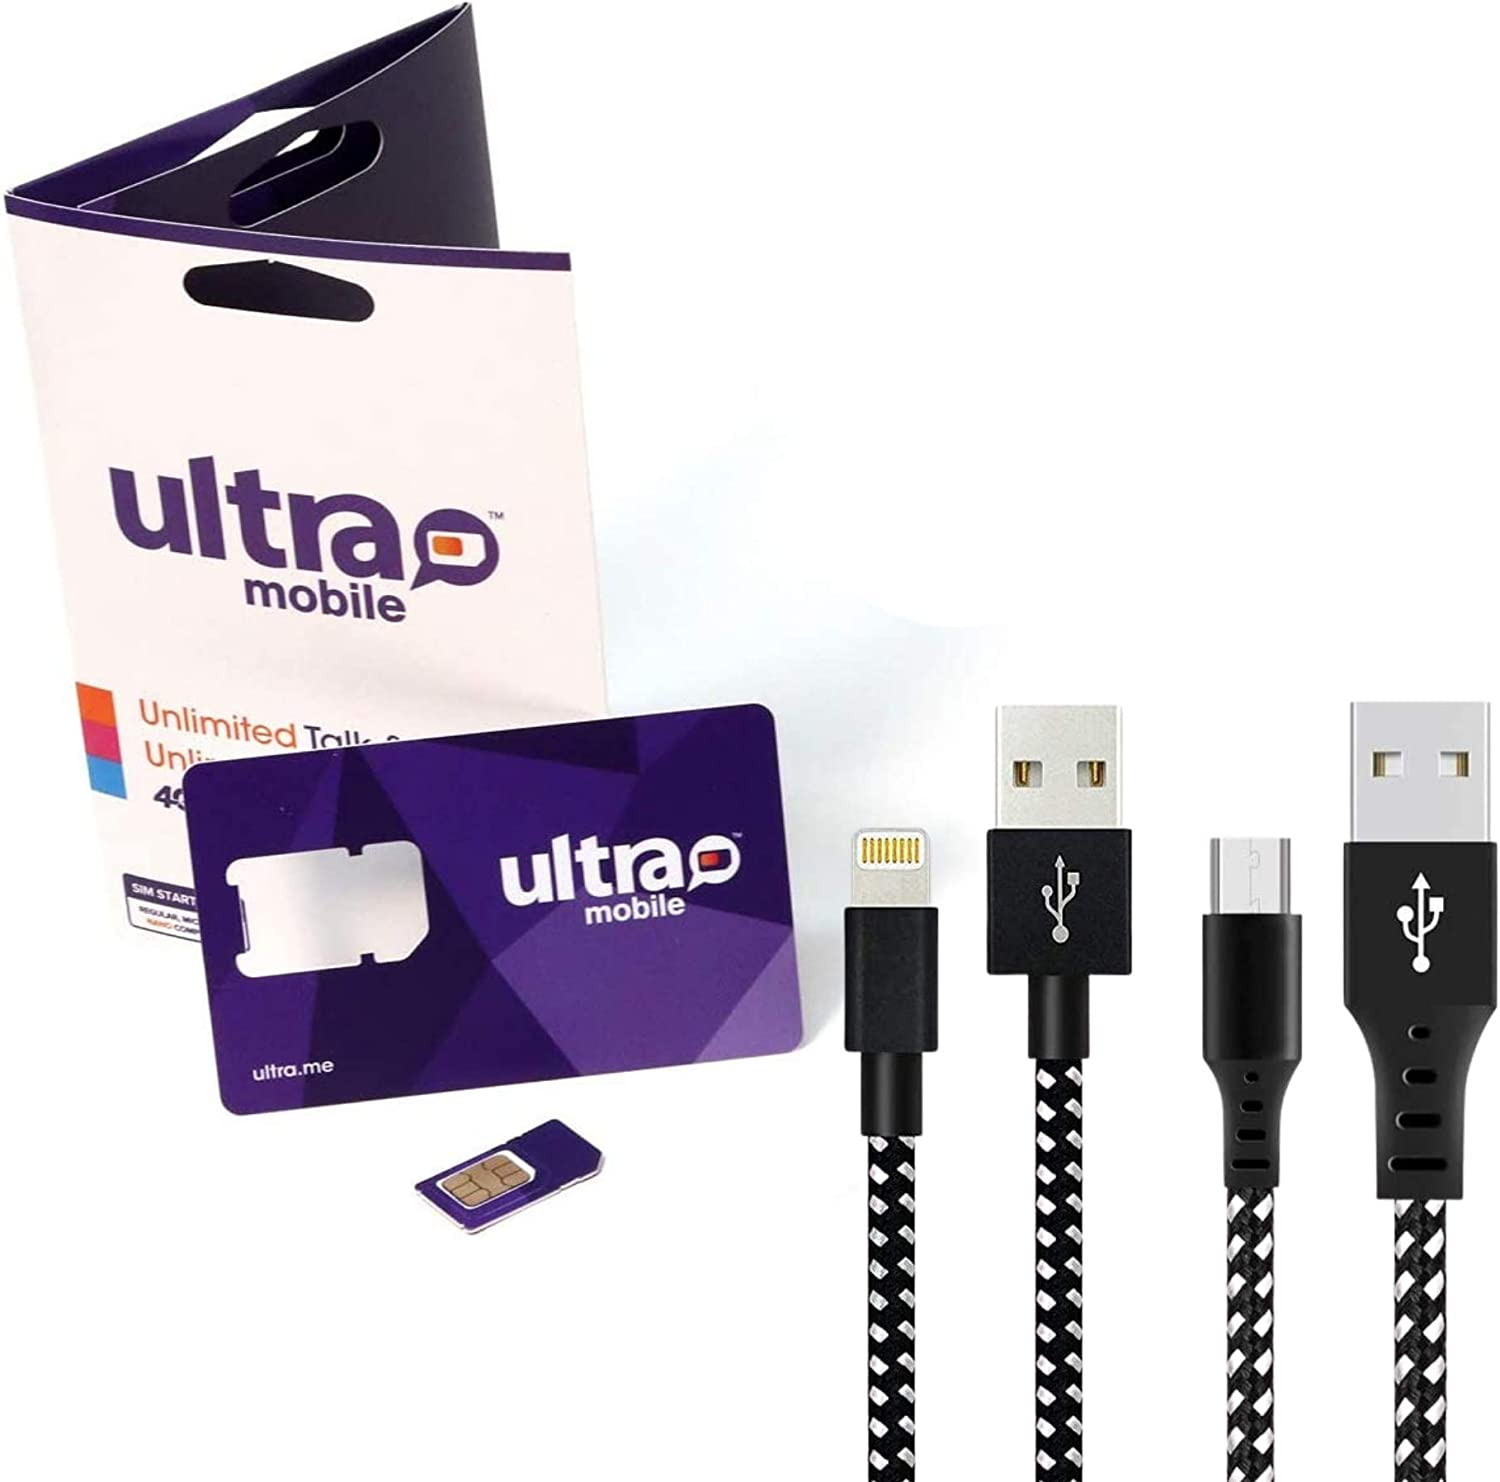 Cell Phone and Smart Phone Compatible SIM Card for 2G 3G 4G LTE GSM Devices - iPhone, Galaxy, Smartwatches and Wearables - Choose Your Plan - 3ft Lightning and Micro USB Cable